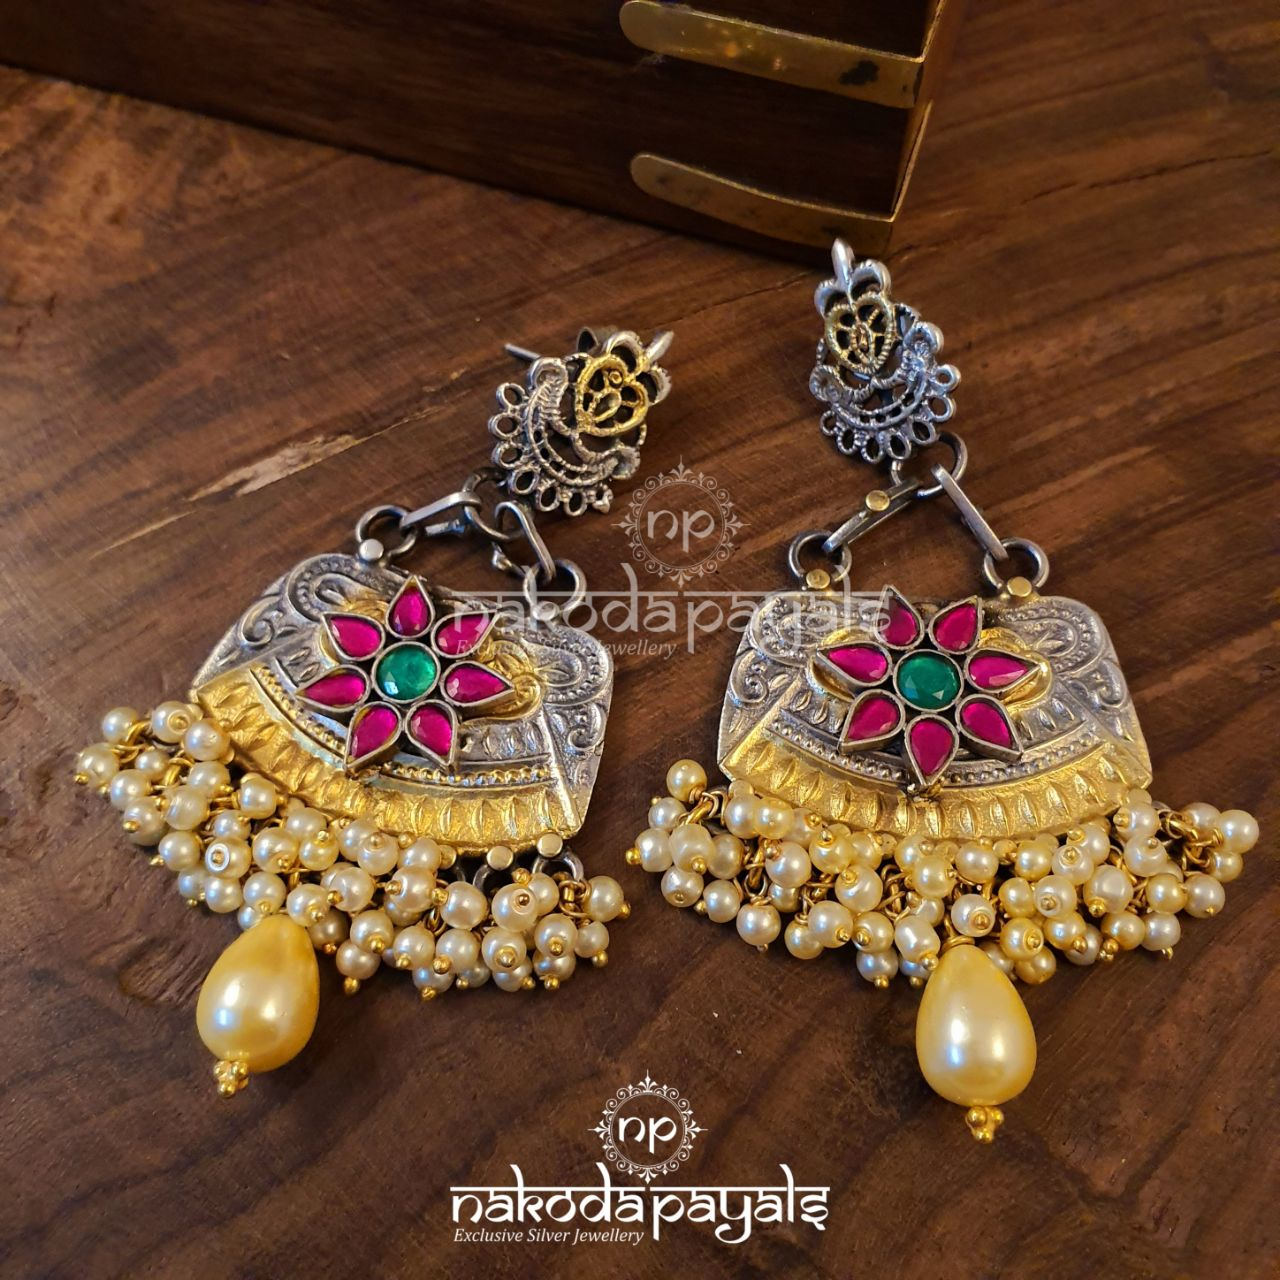 Perky Kundan Earrings In Dual Tone